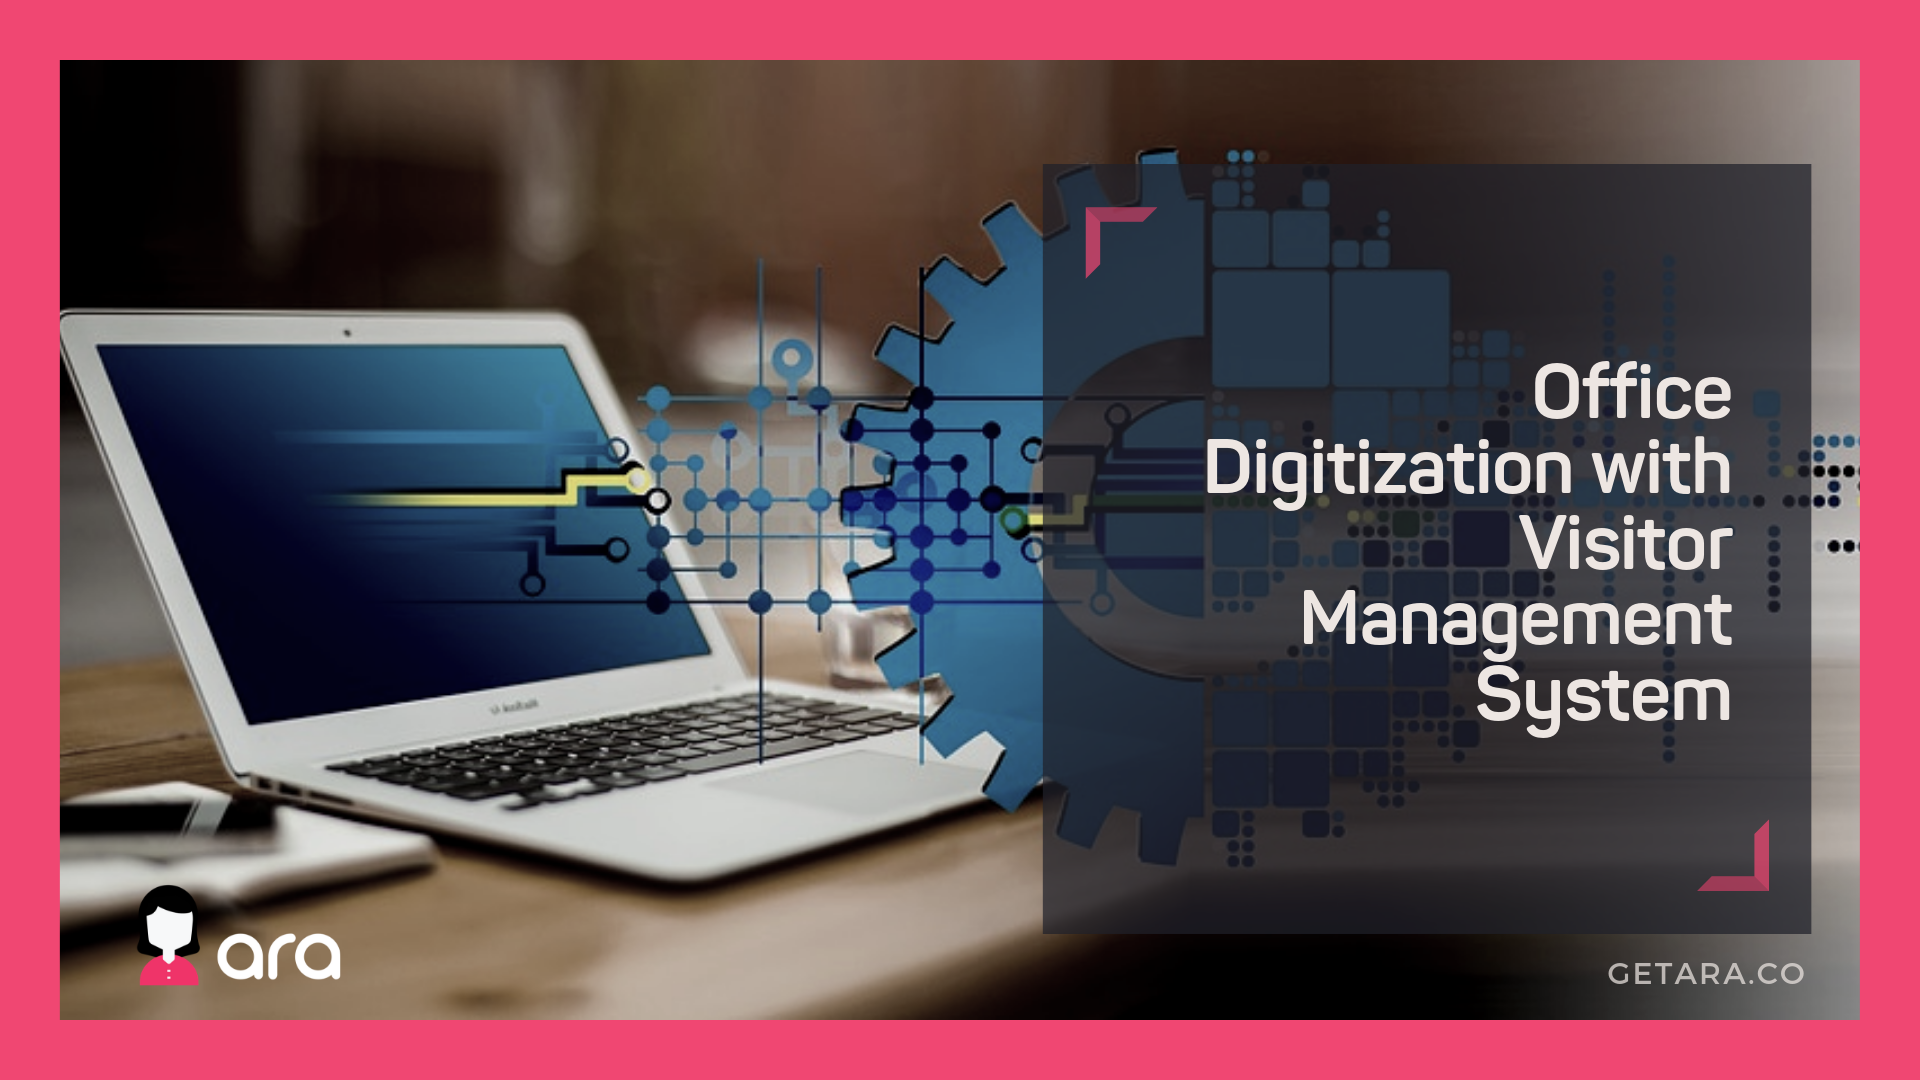 Office Digitization with a Visitor Management System